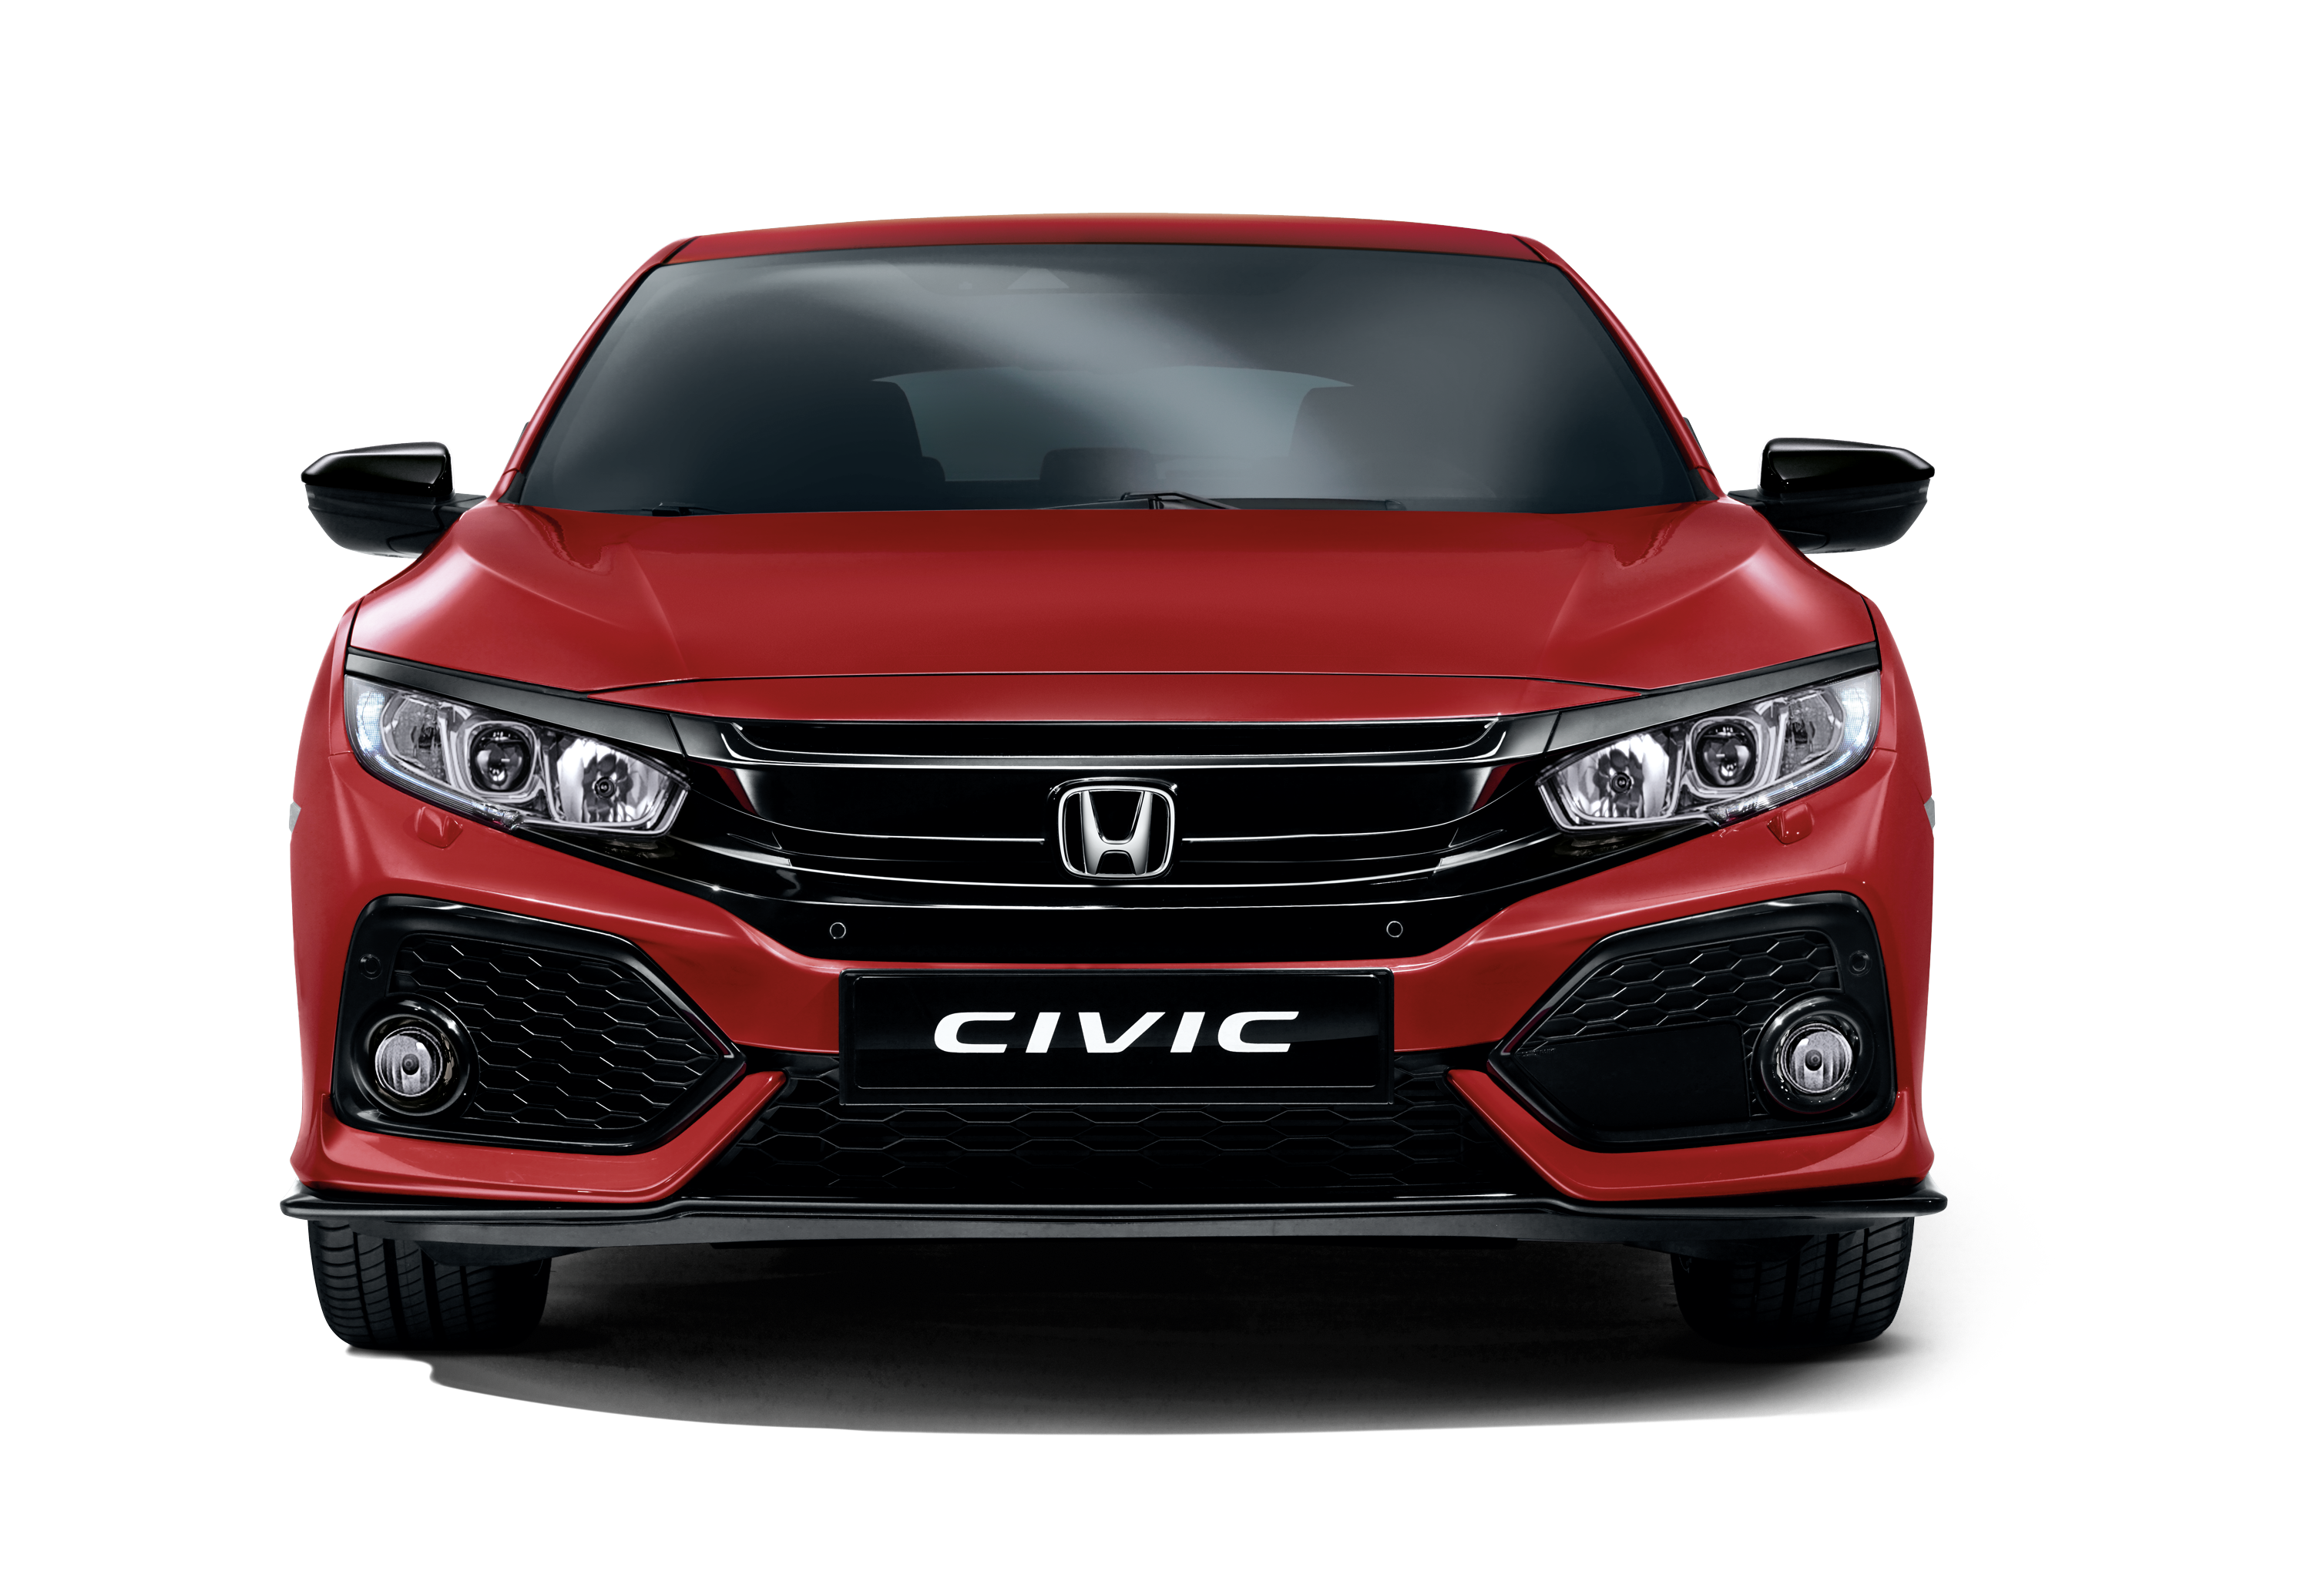 Honda Civic Hatchback Rally Red